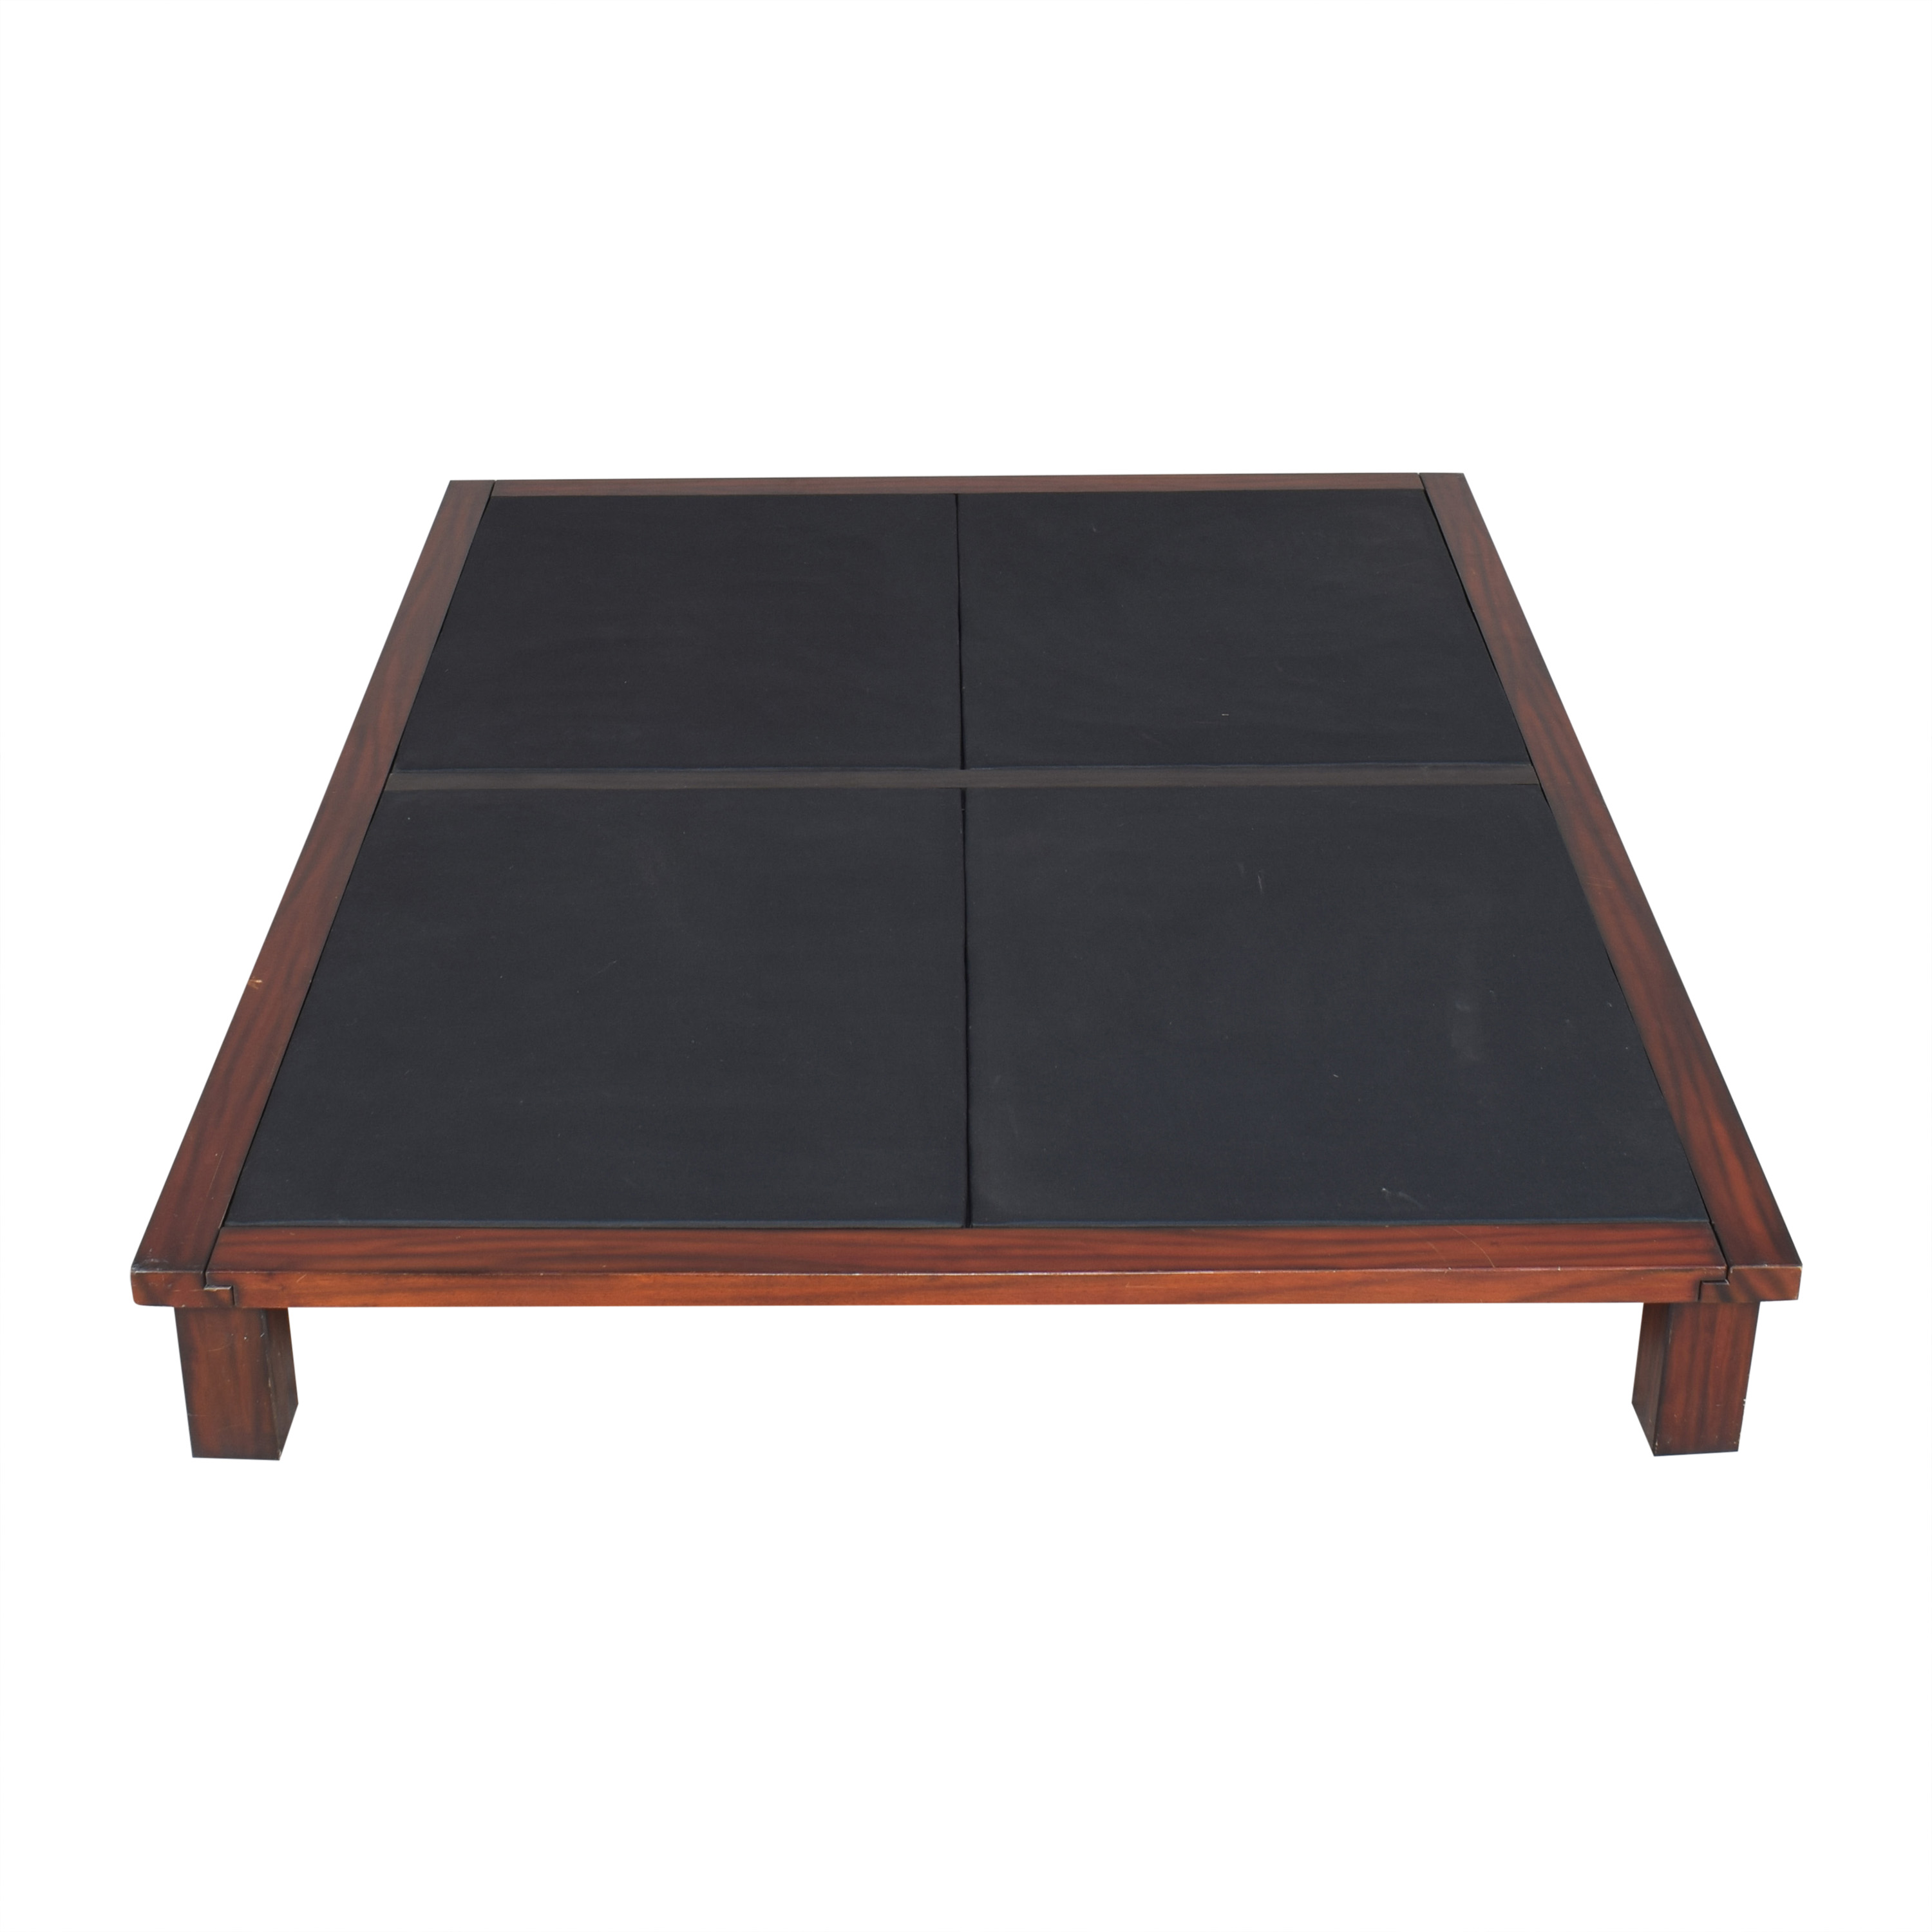 Charles P. Rogers Madera Queen Platform Bed / Bed Frames